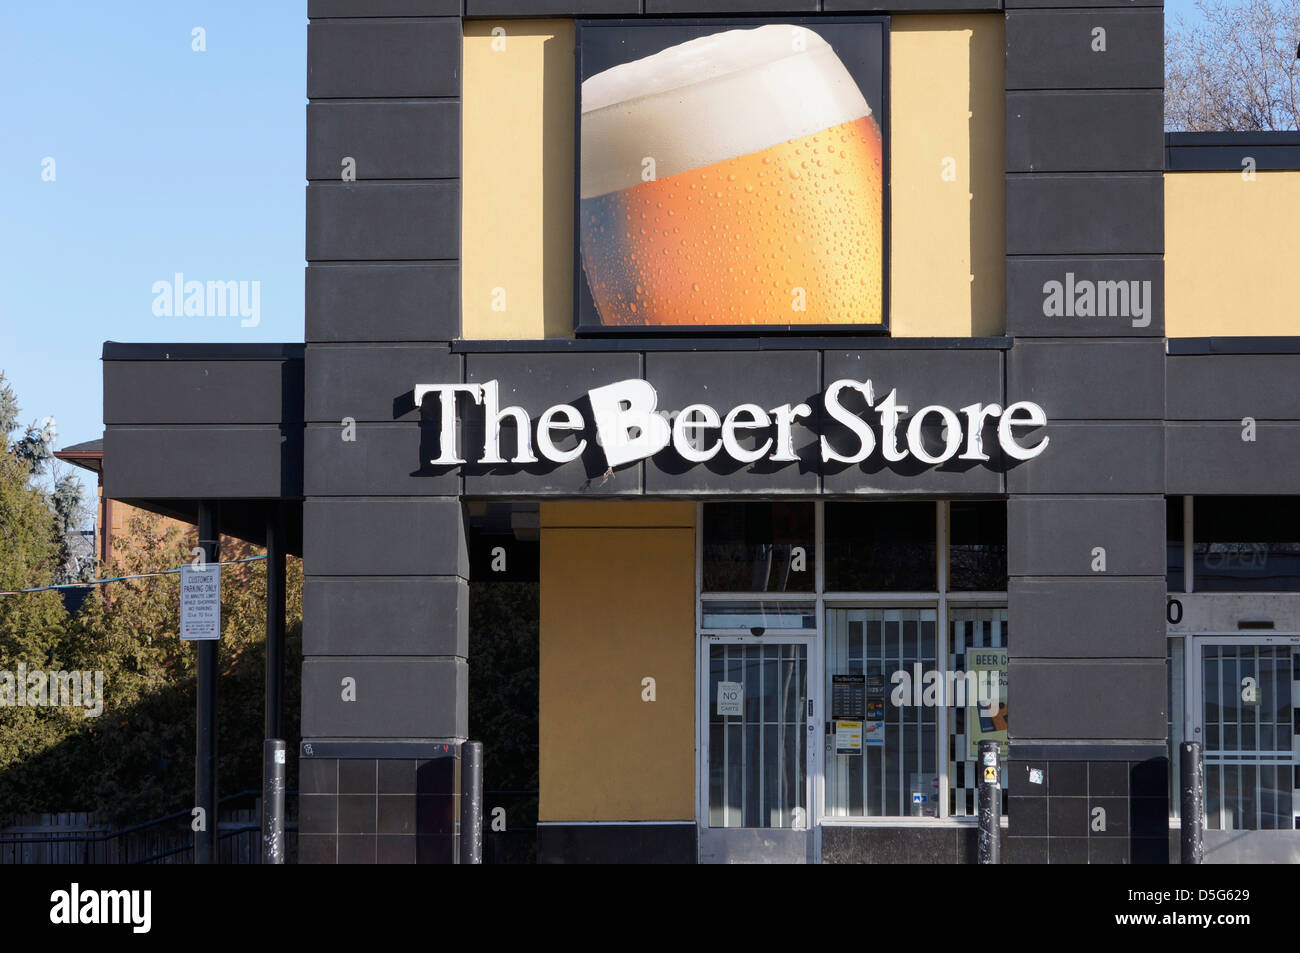 The Beer Store, Ontario, Canada - Stock Image